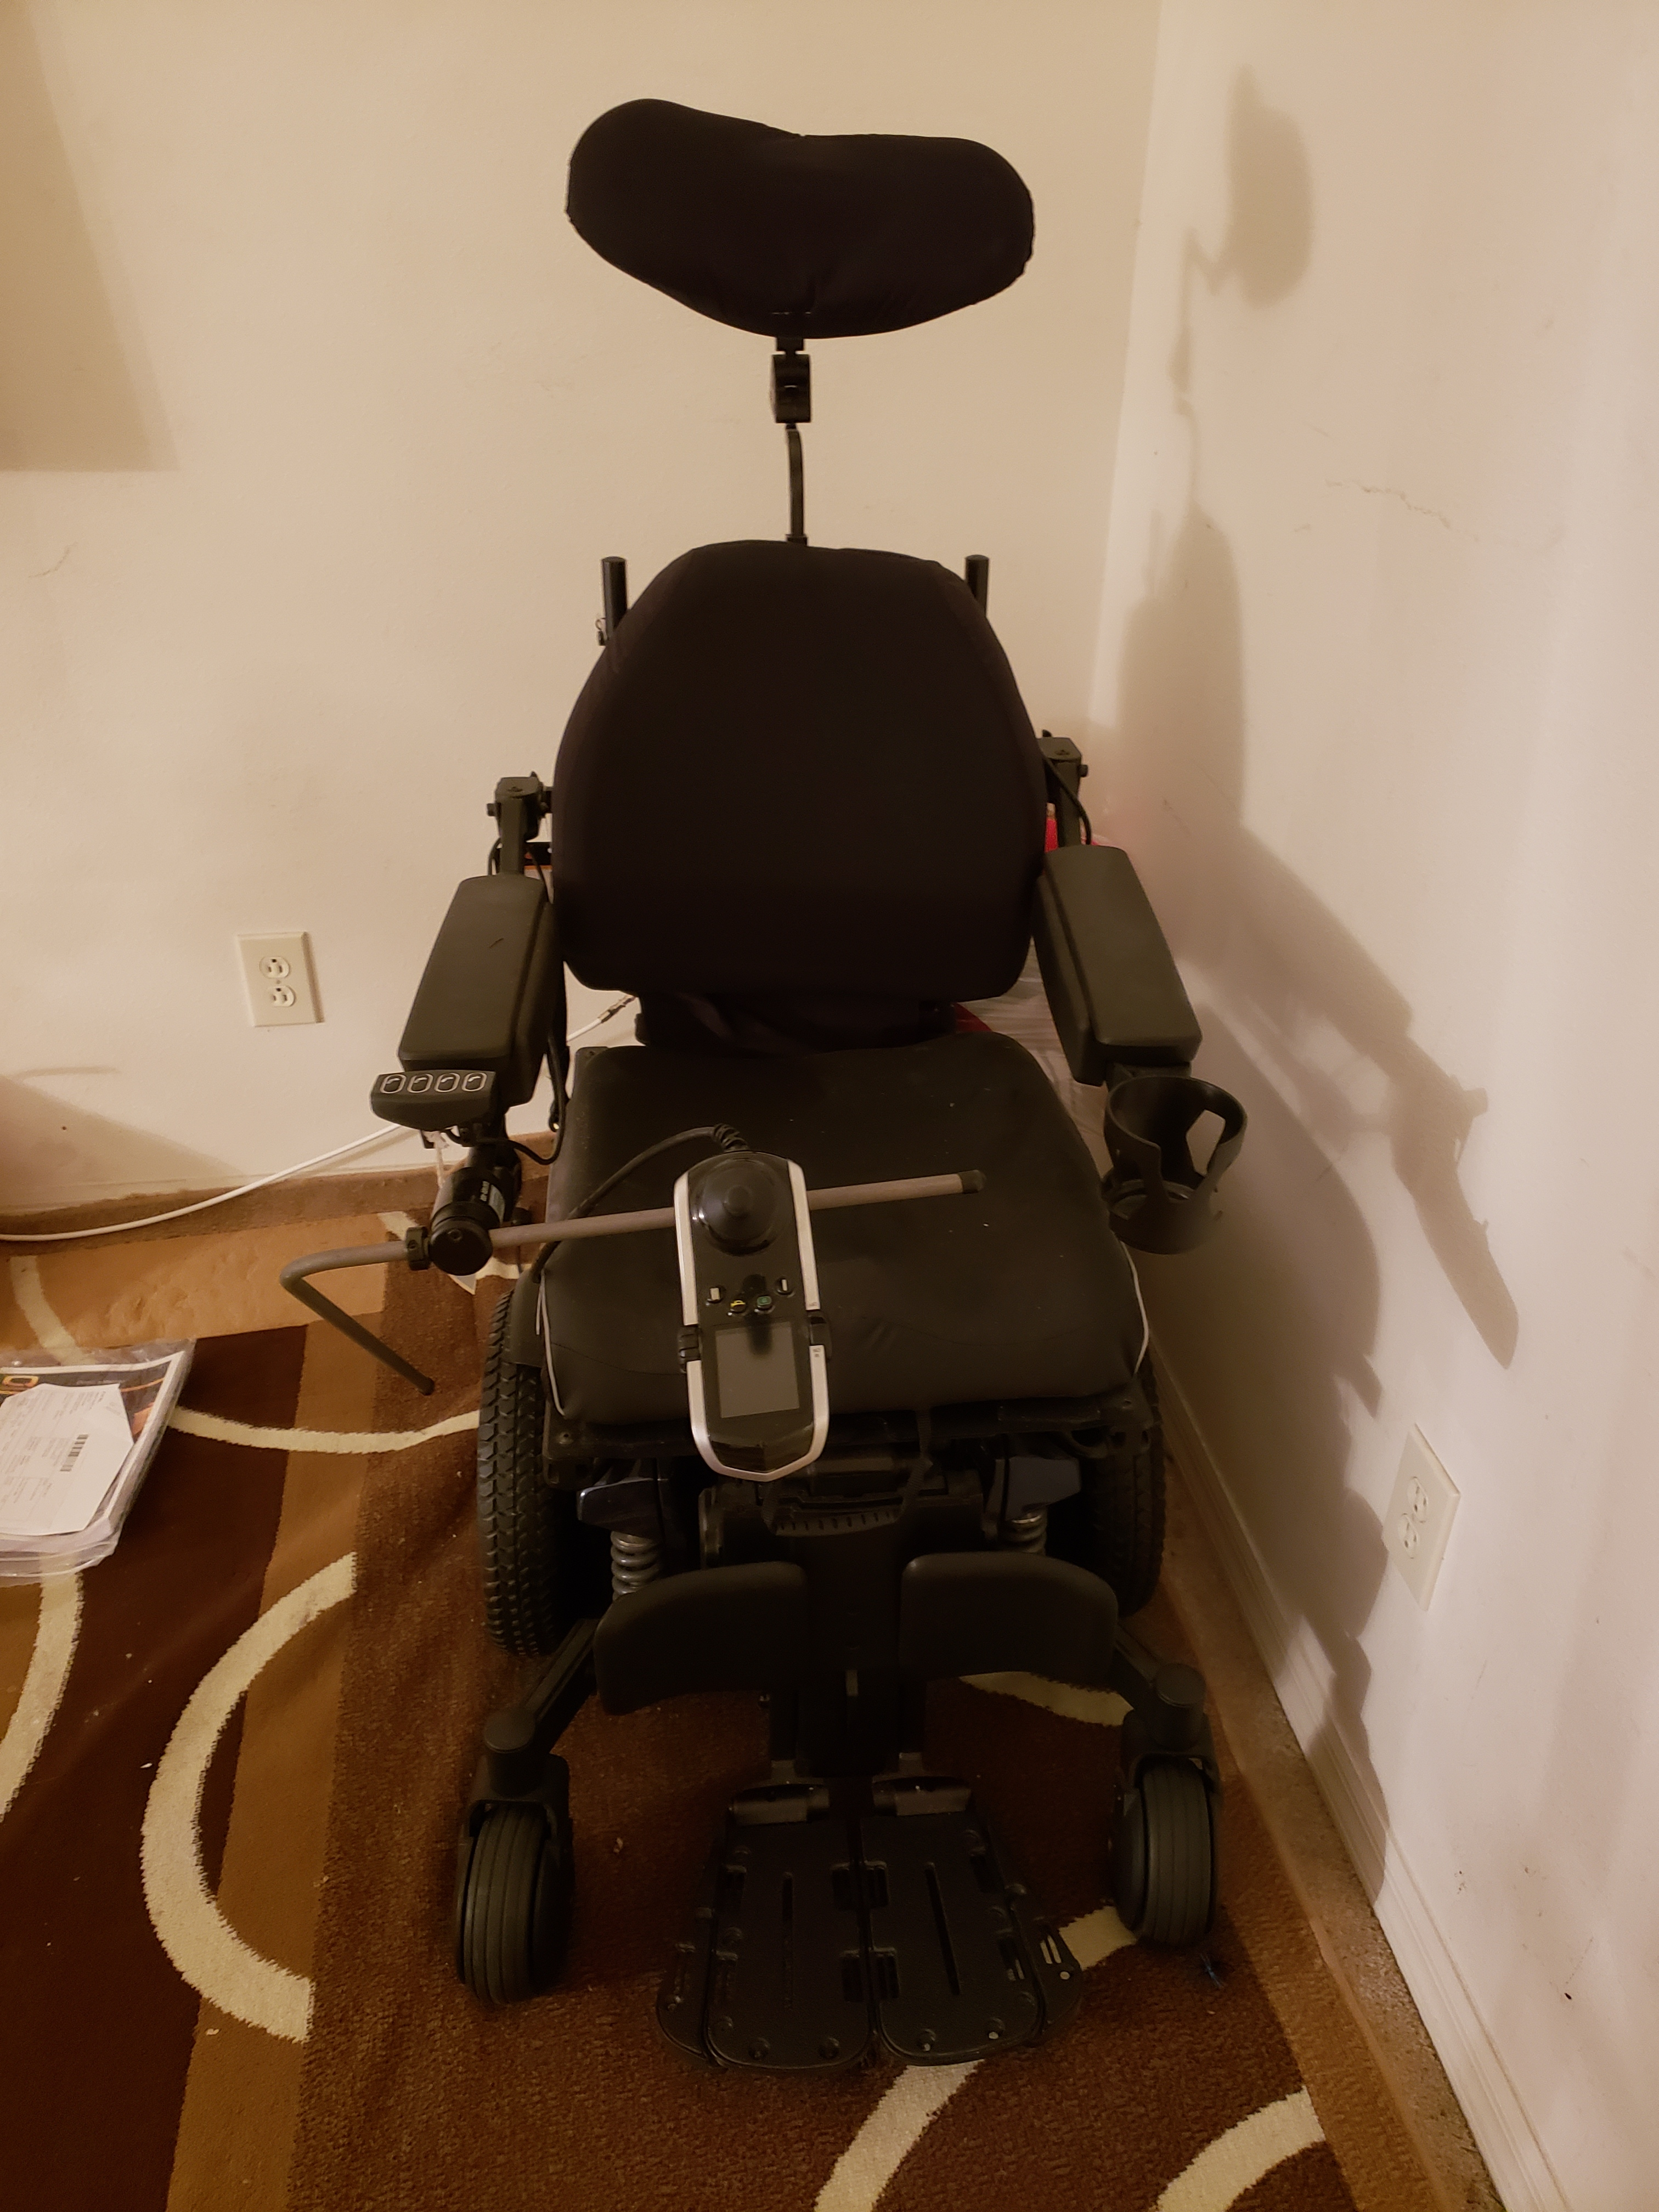 quality design 544f9 dc202 Quantum 6 Edge 2.0 Power Chair - Buy   Sell Used Electric Wheelchairs,  Mobility Scooters   More!